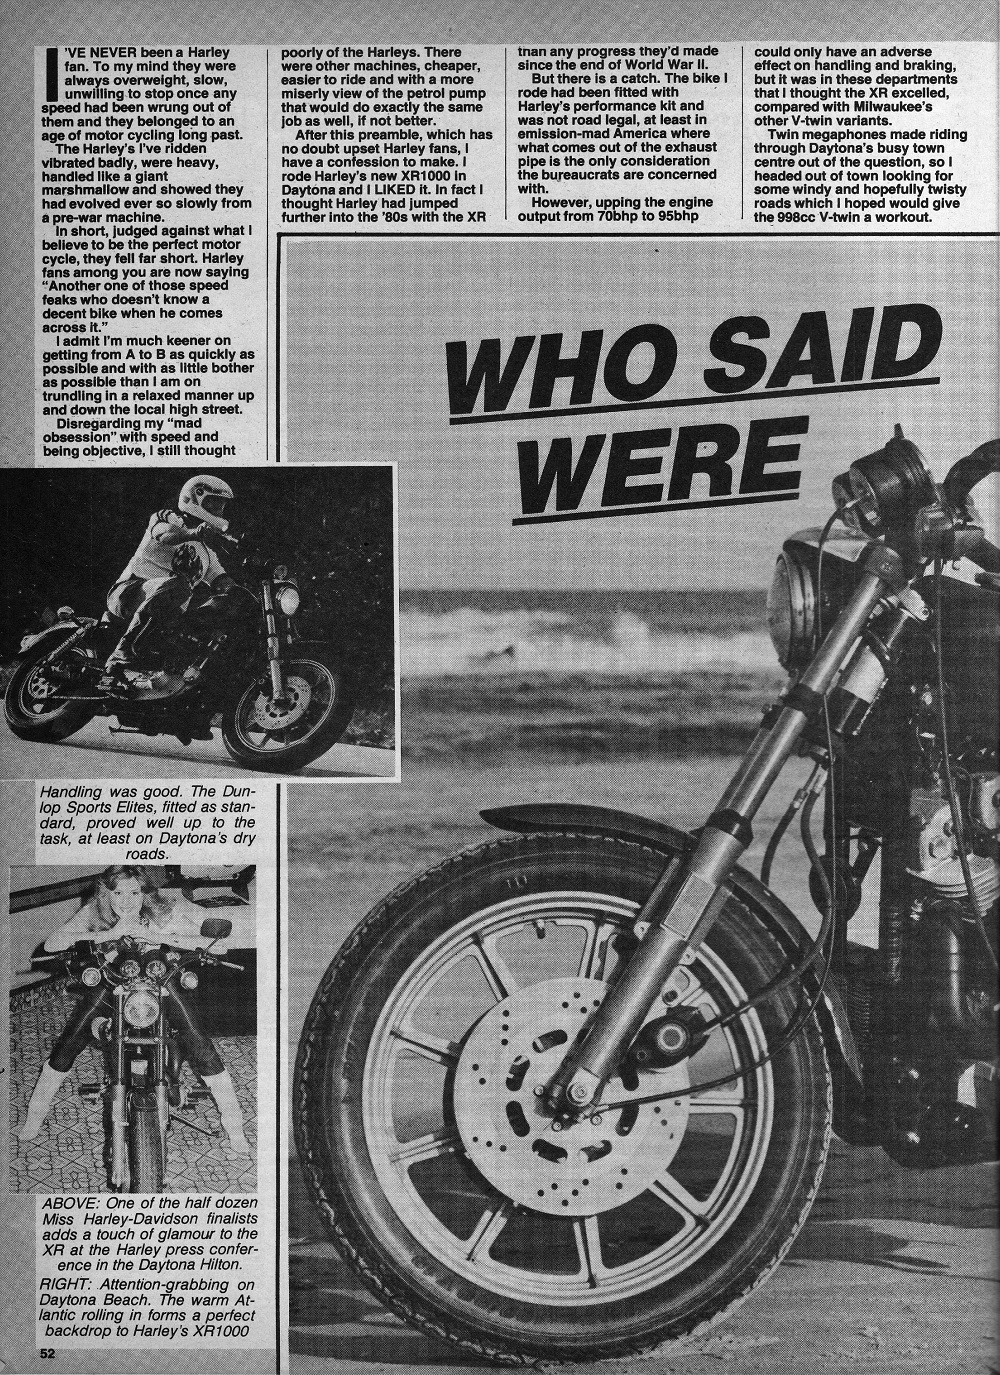 1983 Harley Davidson XR1000 road test.1.jpg